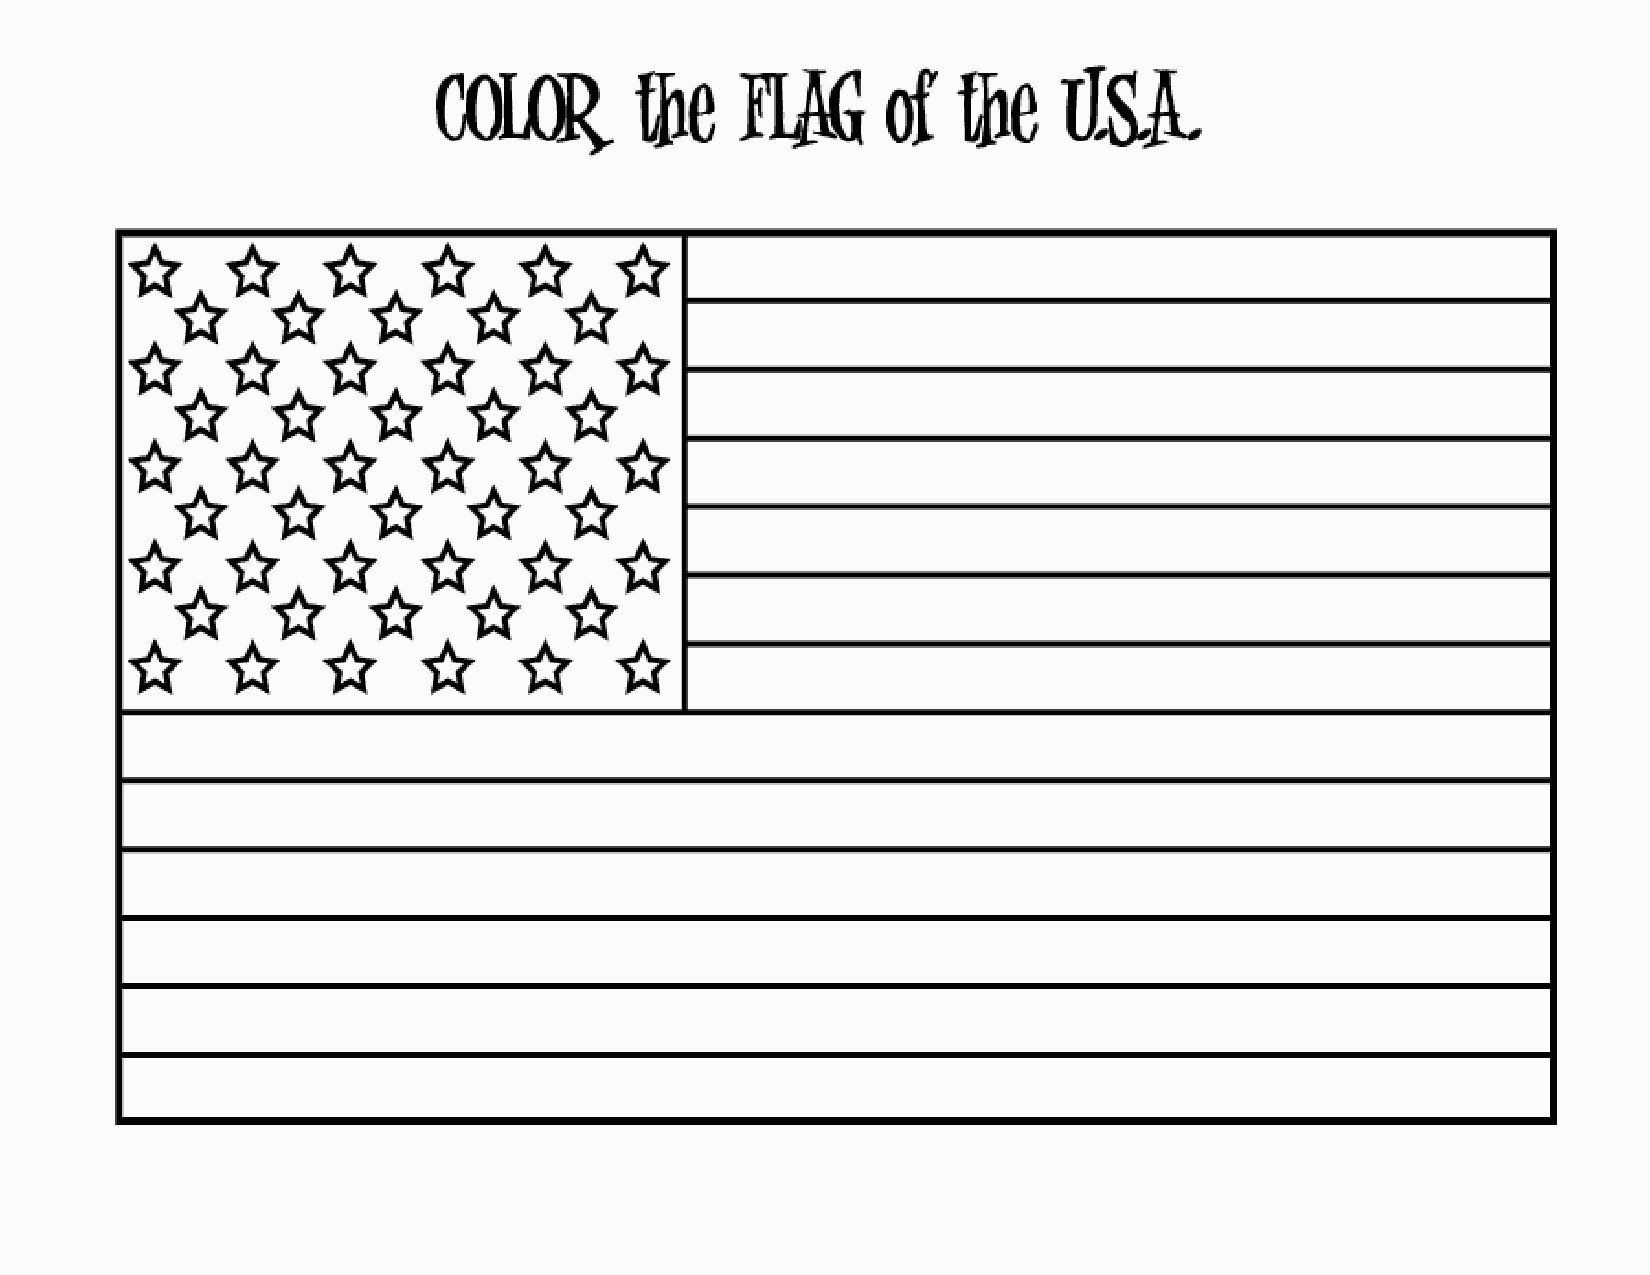 Us Flag Coloring Page Fresh American Flag Coloring Pages African Woman Bulldog Dental In 2020 American Flag Coloring Page American Flag Colors Flag Coloring Pages